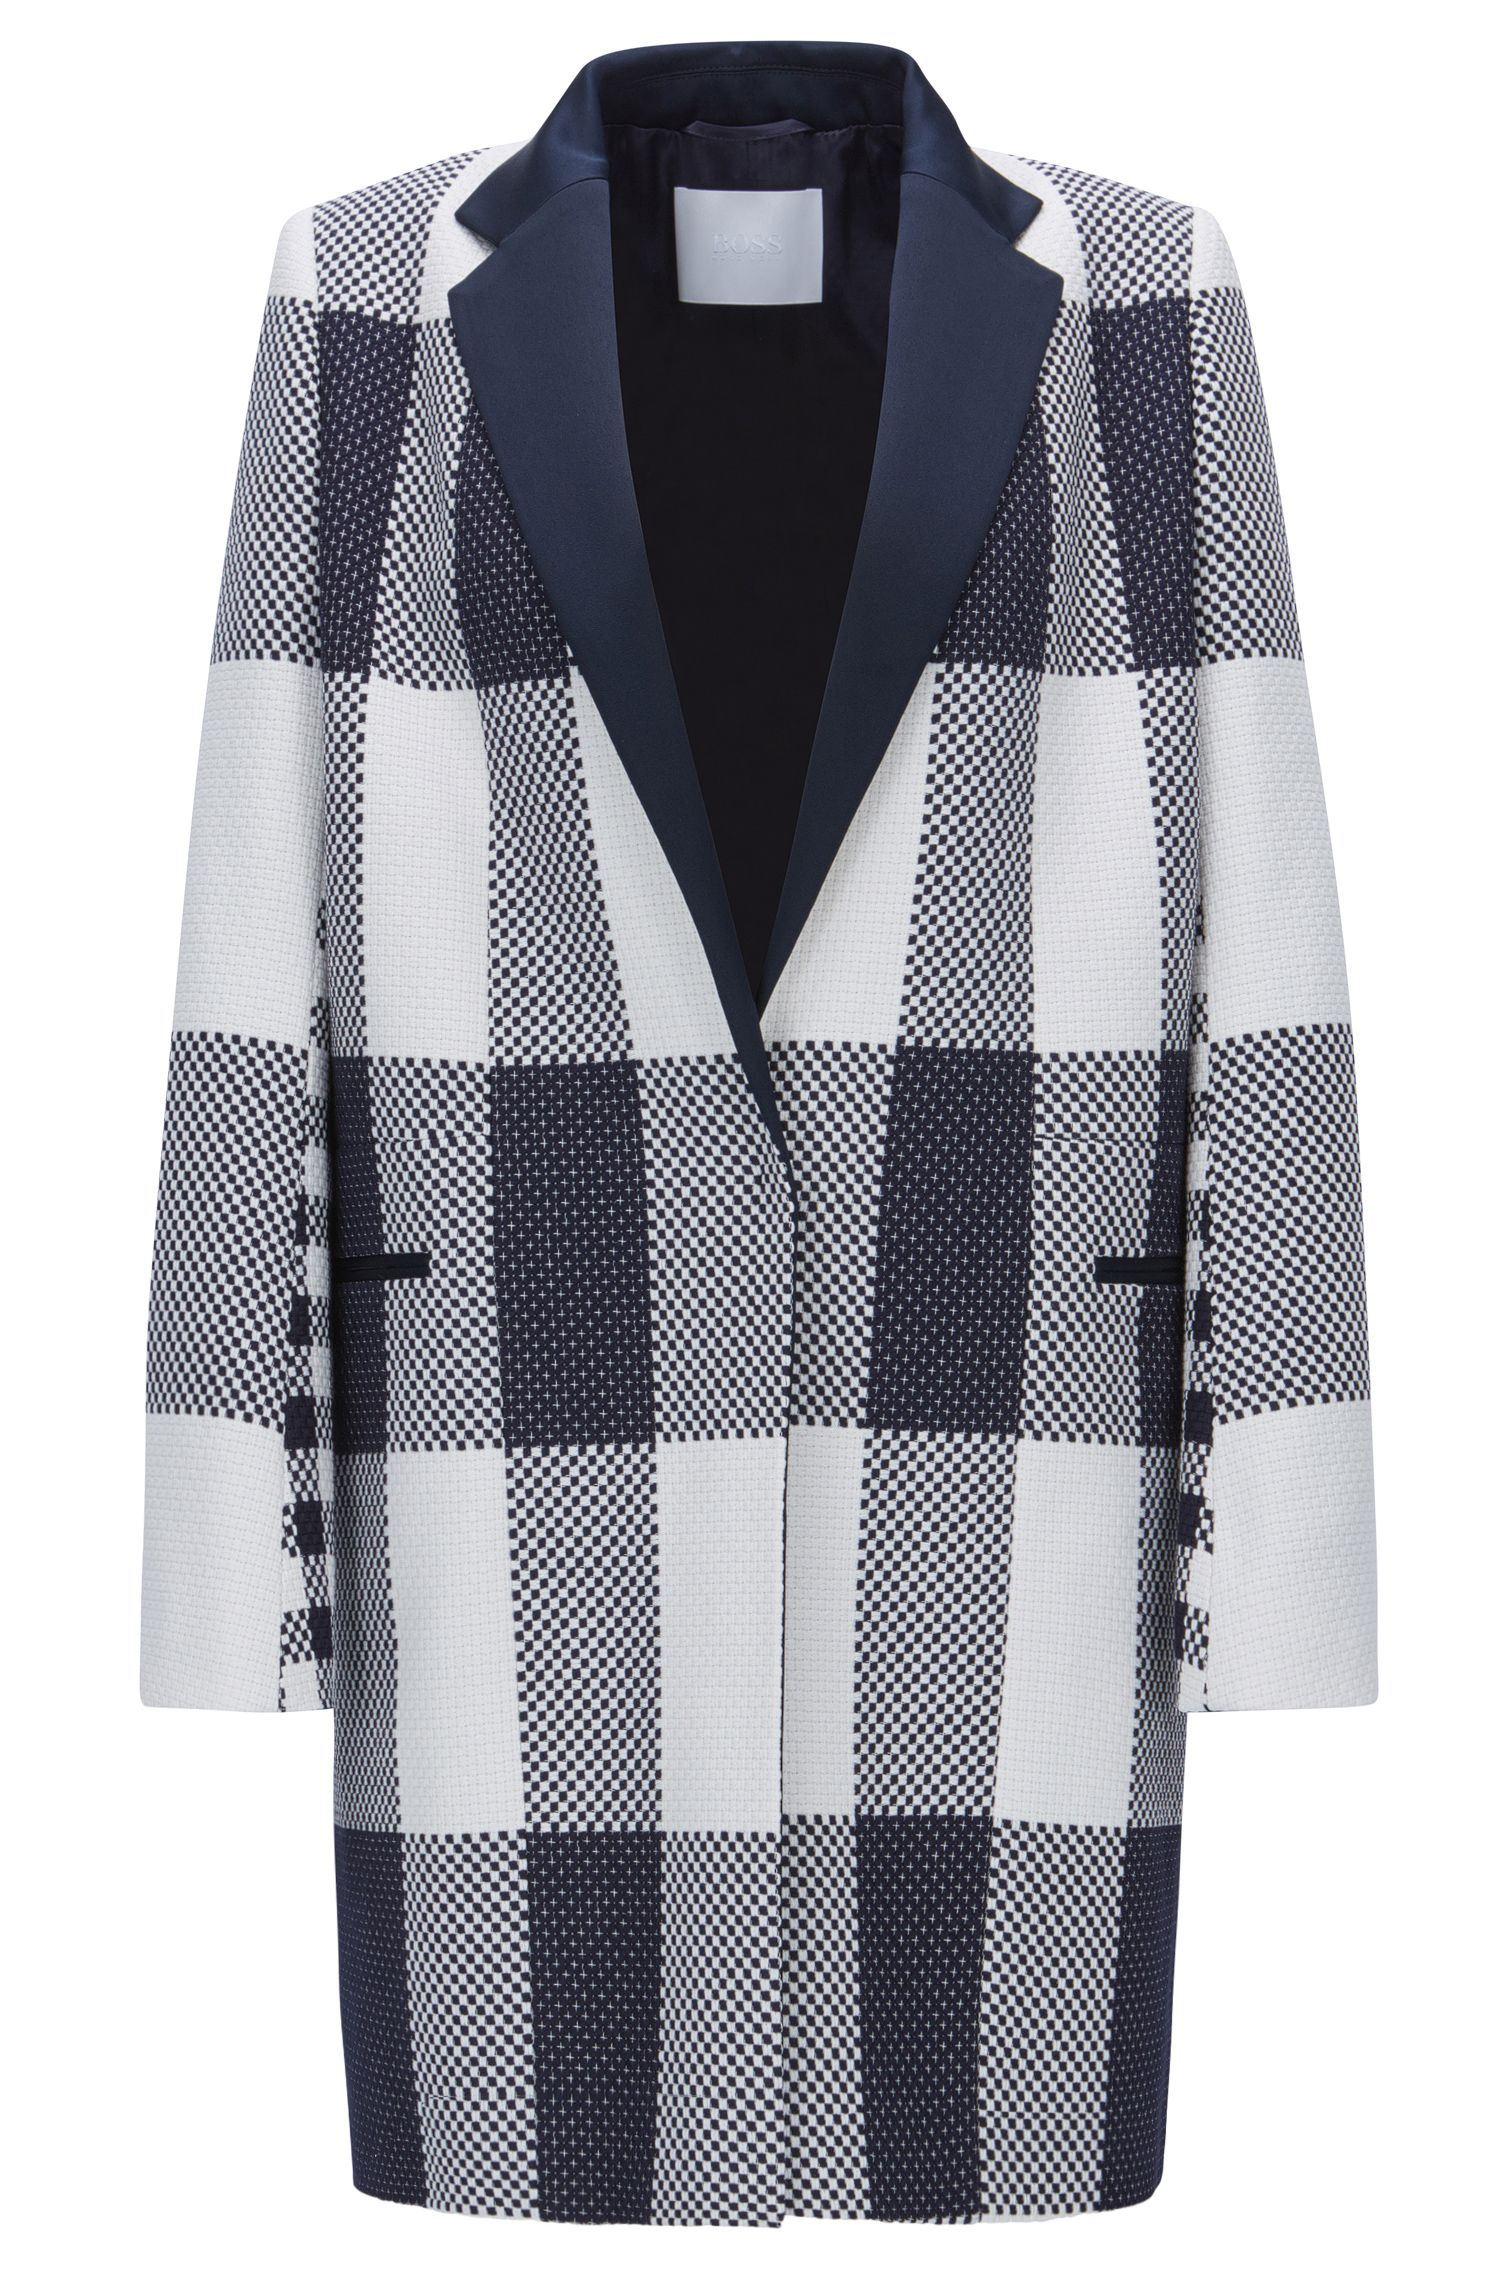 Cotton Plaid Jacket | FS Caleama